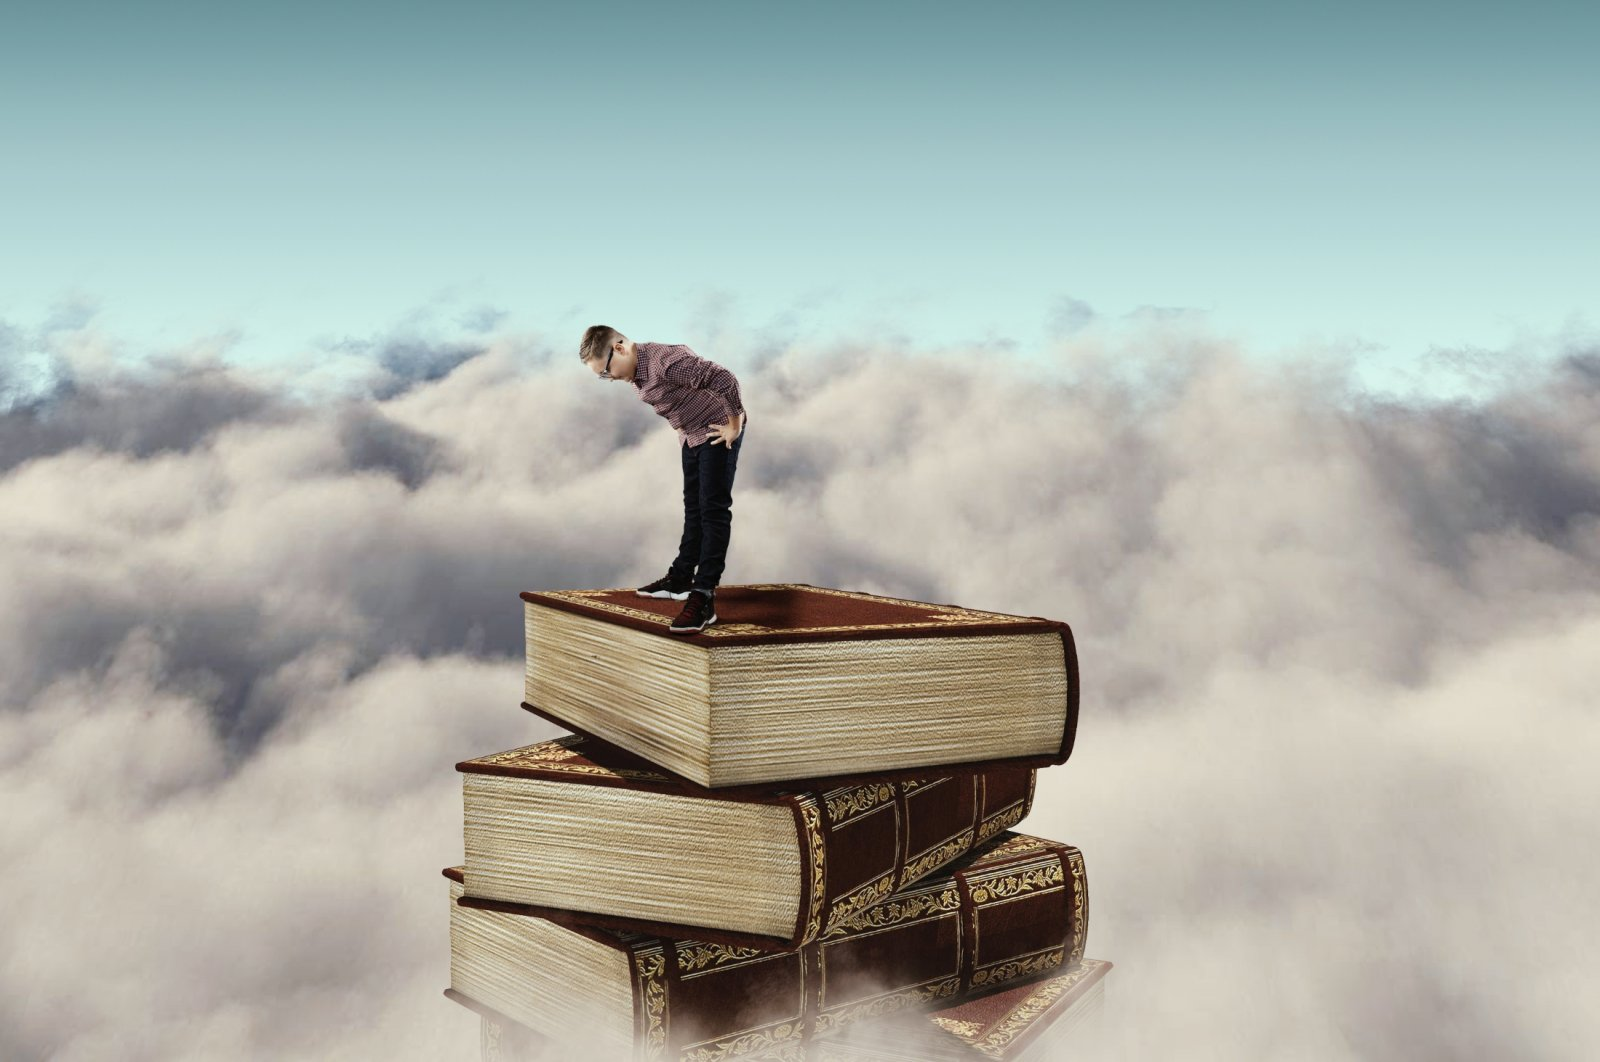 A digital illustration shows a child standing on a stack of books above the clouds. (Shutterstock Photo)